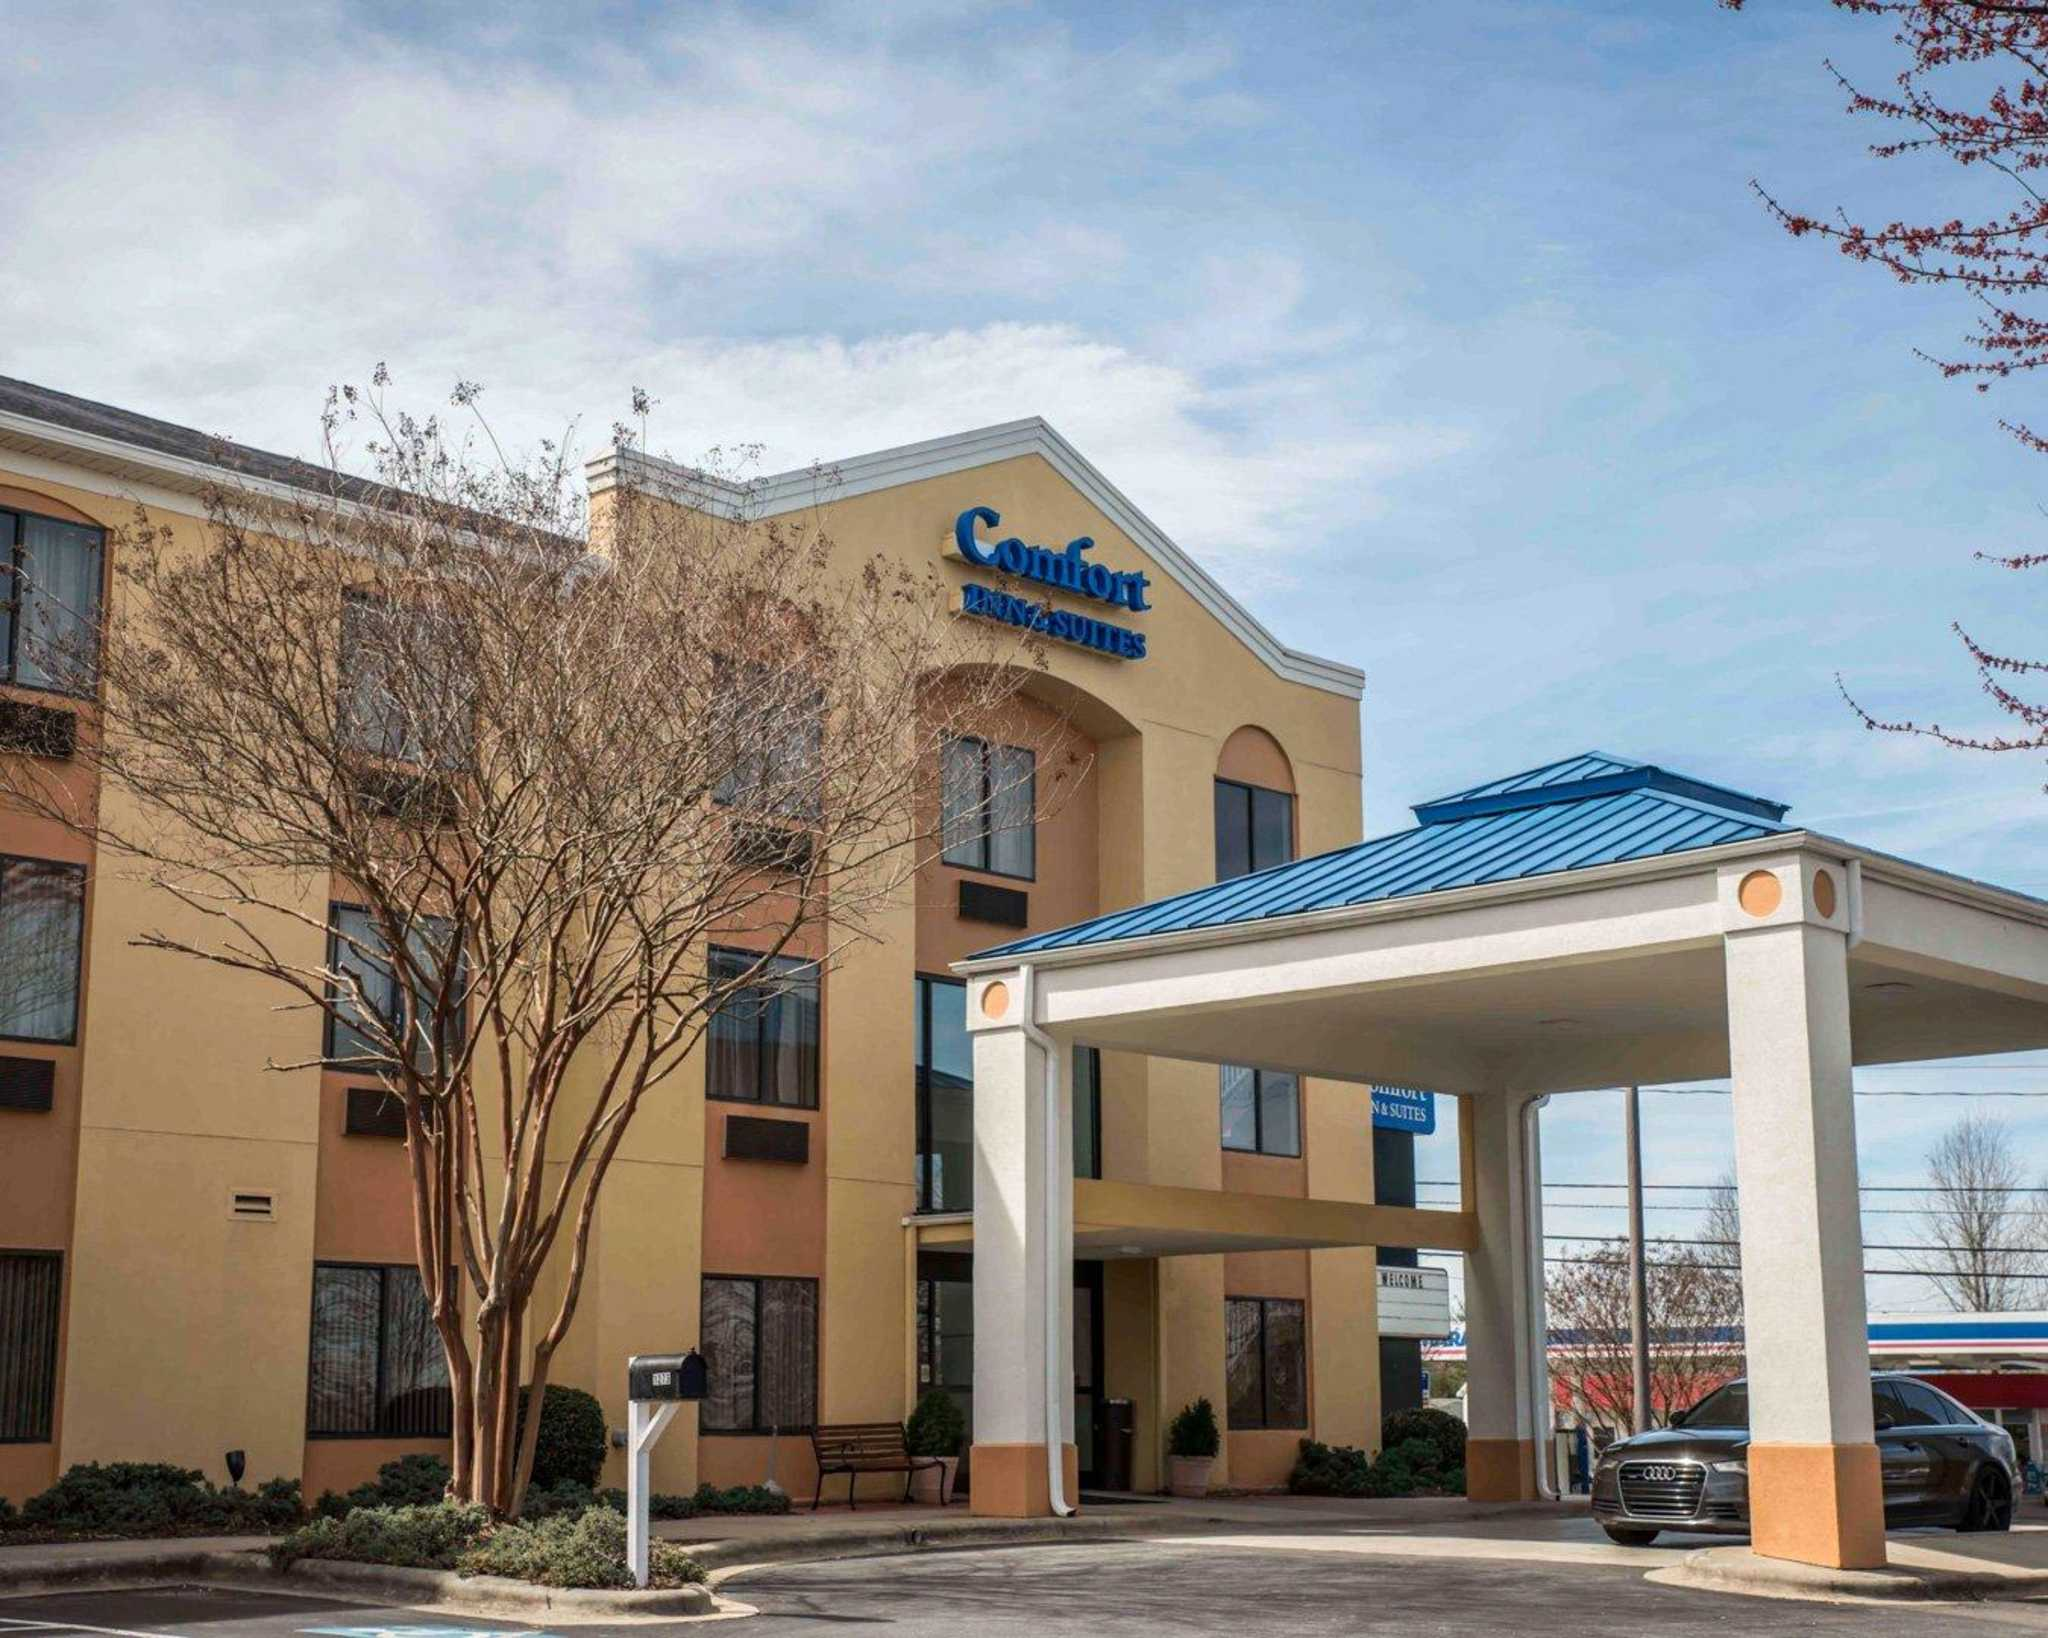 Comfort Inn Amp Suites Morganton Nc Business Directory